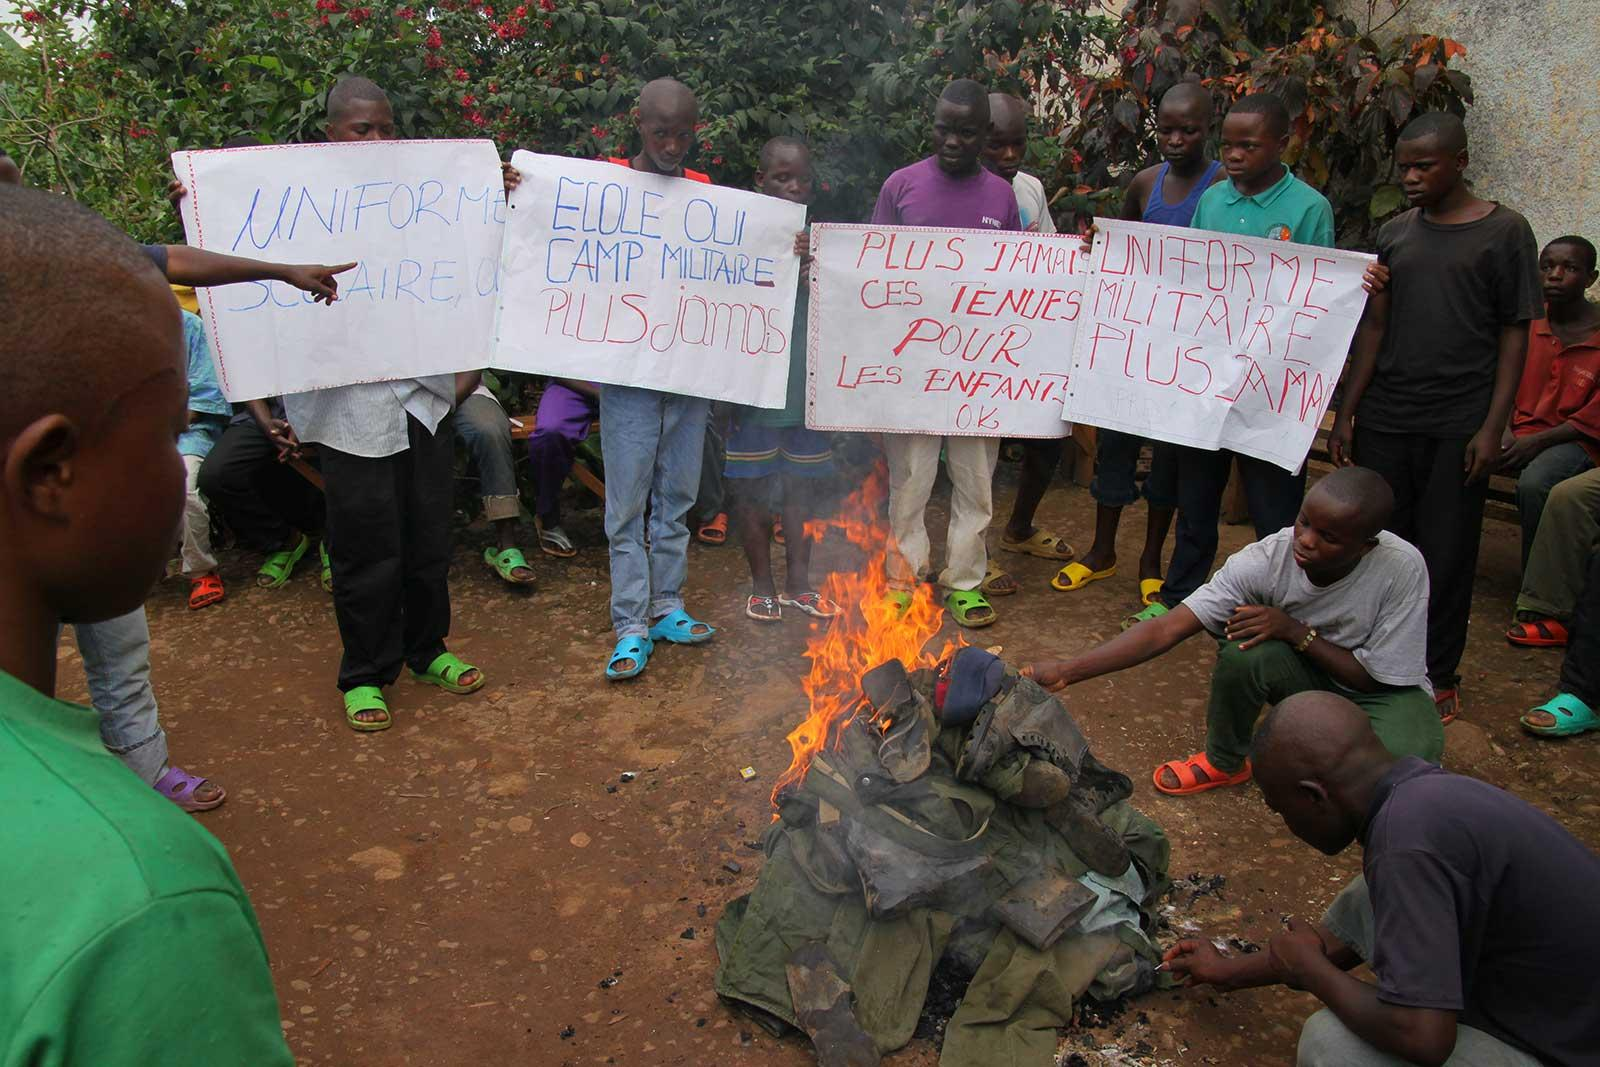 Former child soldiers burning their uniforms